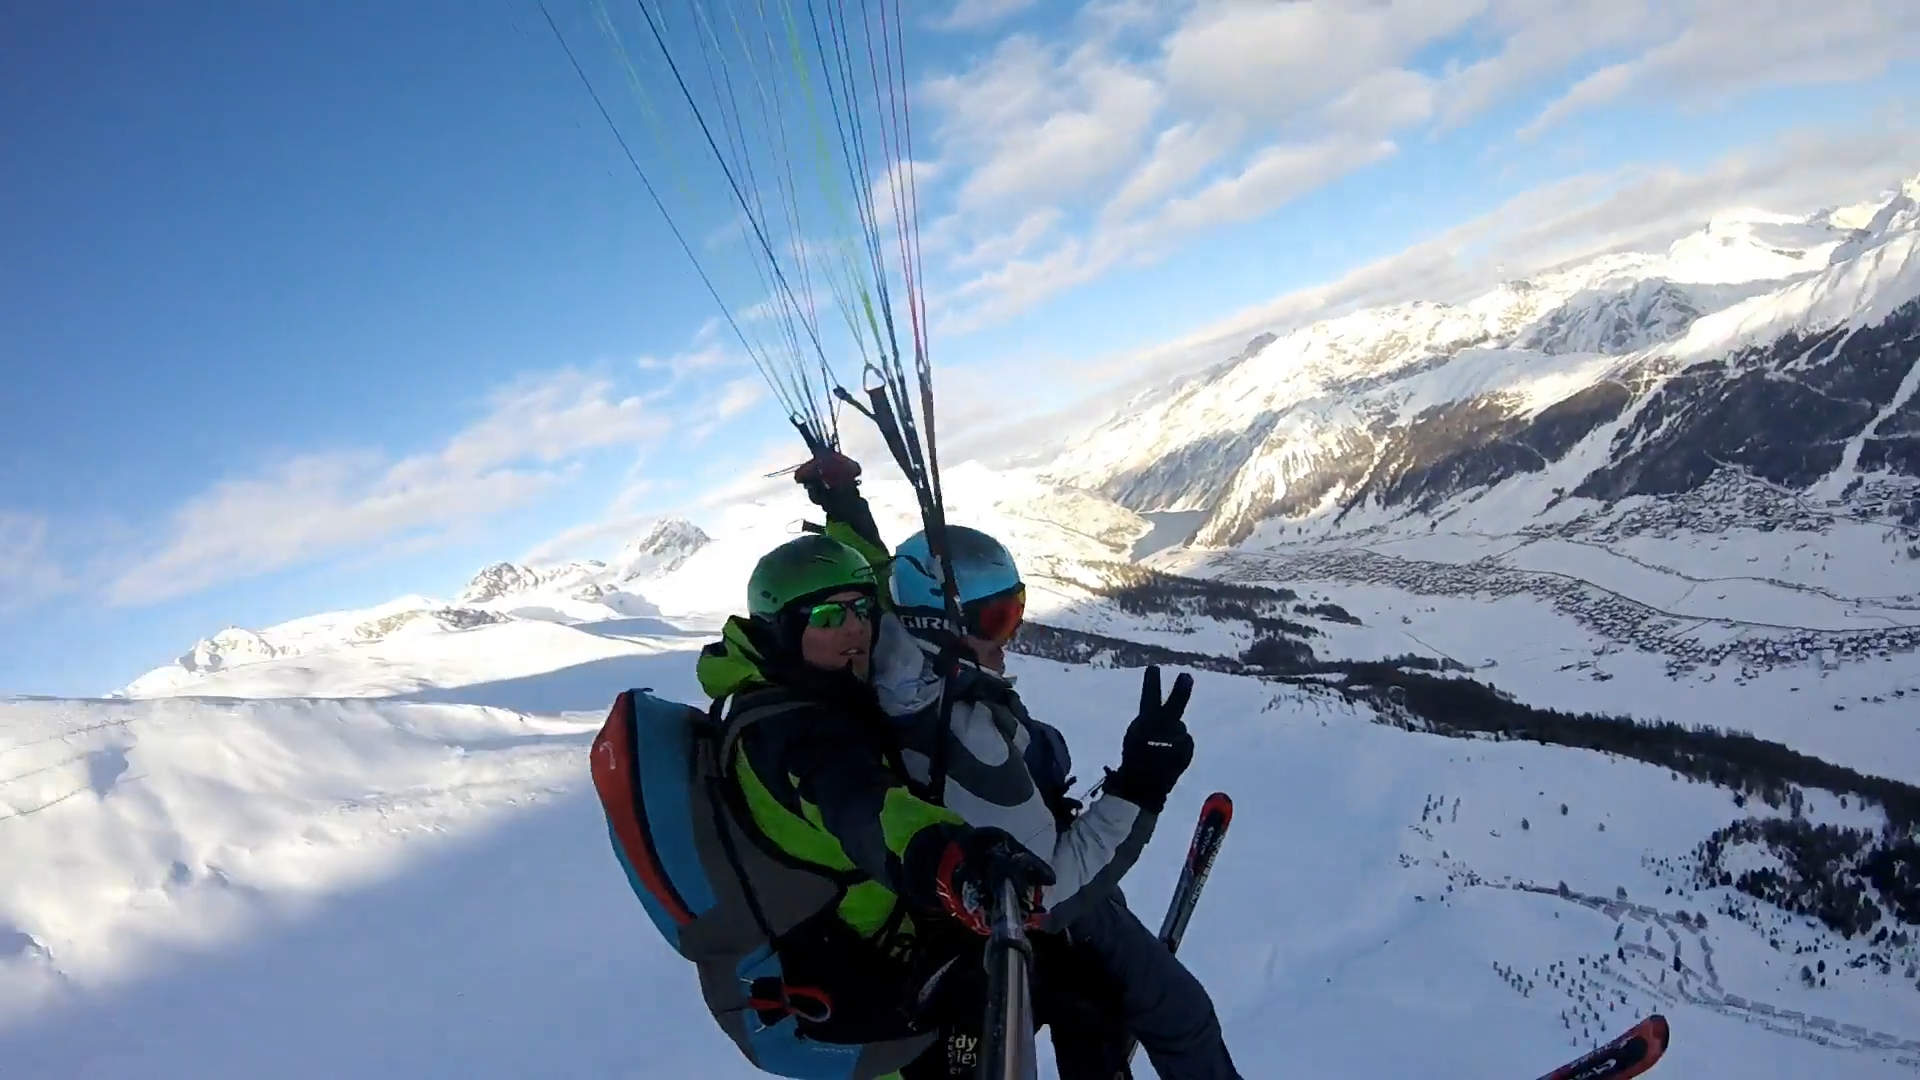 Paragliding Tandem on a snowy day